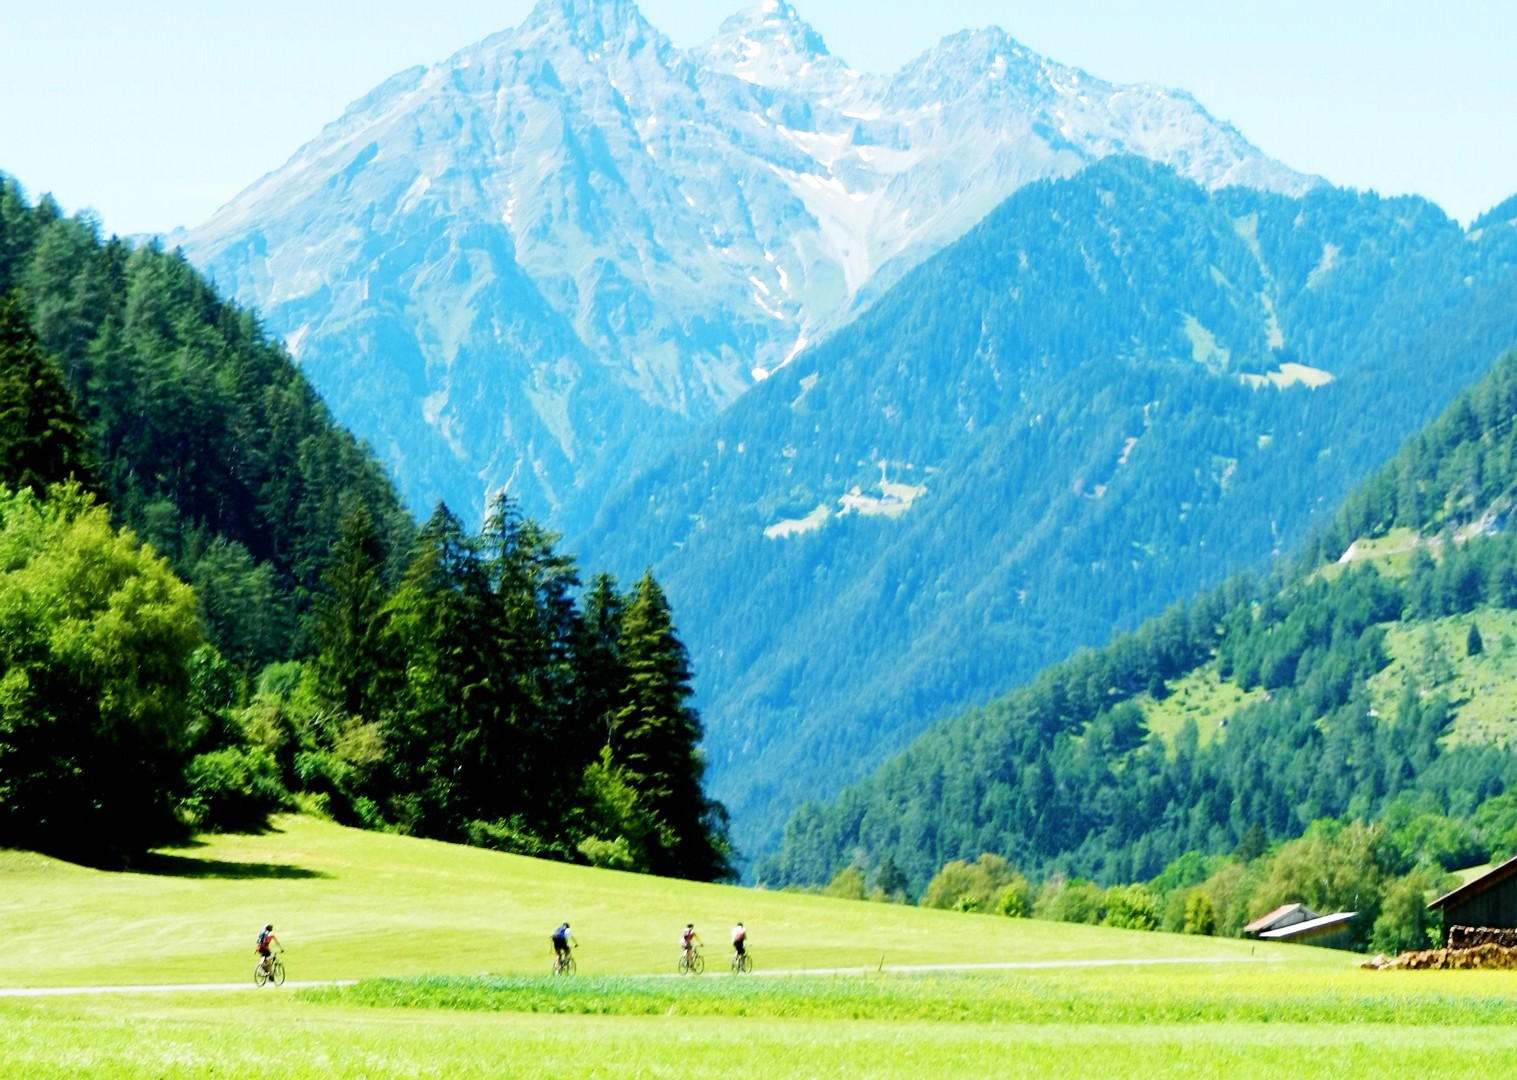 snow-capped-alps-guided-cycling-trip-italy.jpg - Austria and Italy - La Via Claudia - Guided Leisure Cycling Holiday - Leisure Cycling